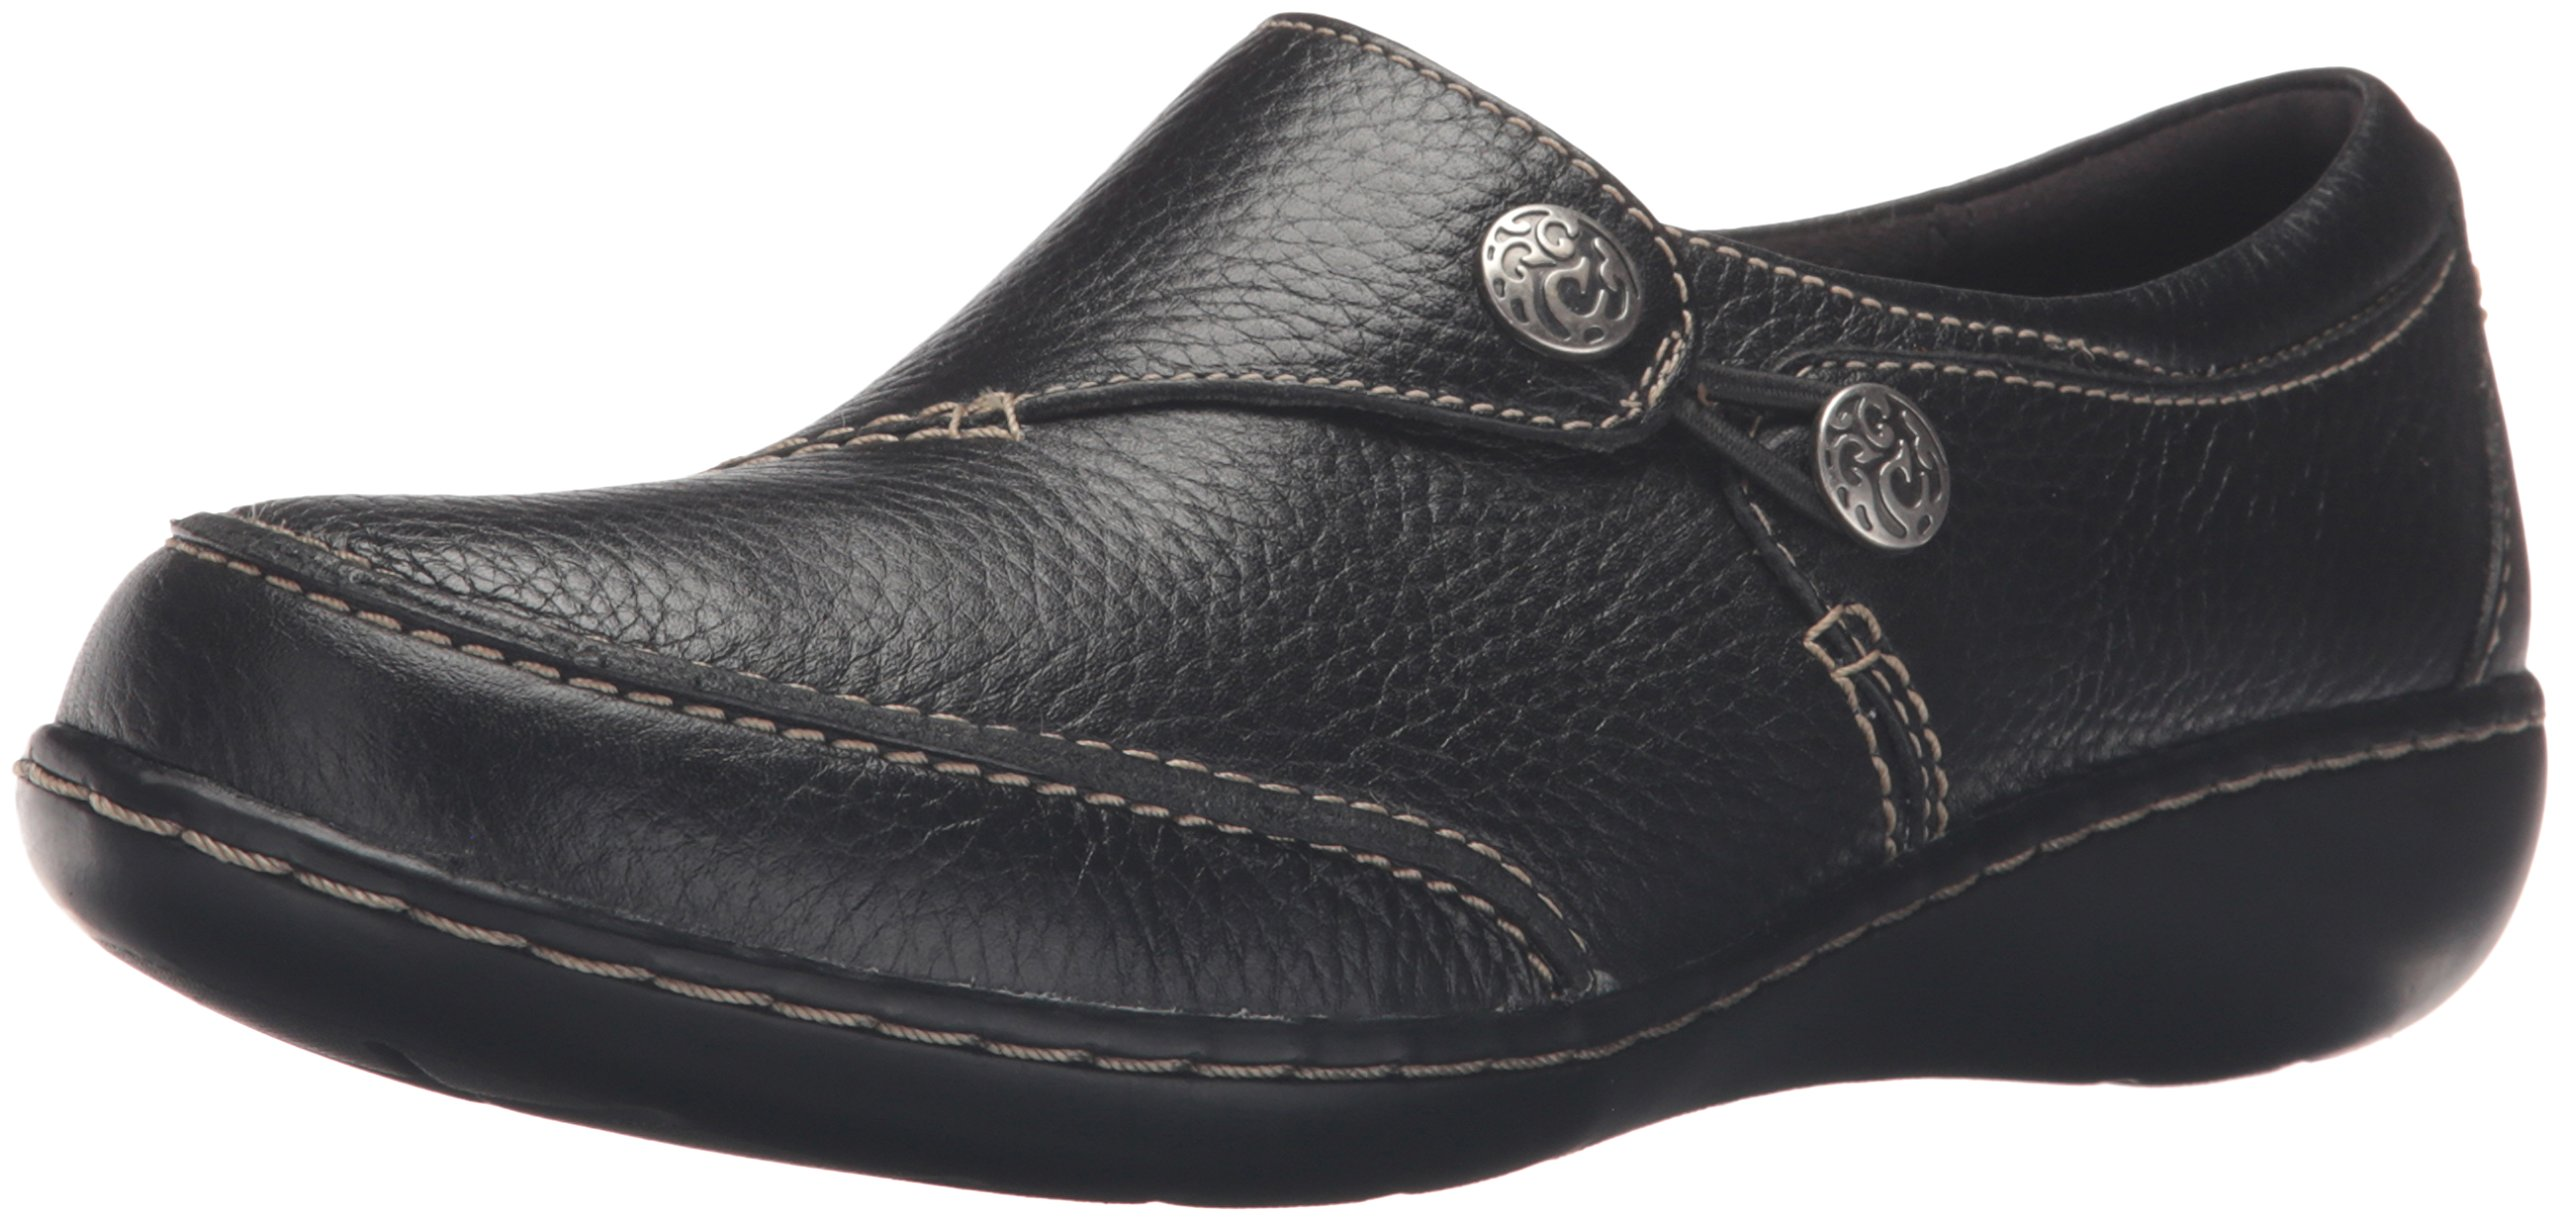 CLARKS Women's Ashland Lane Q Slip-on Loafer, Black, 8 M US